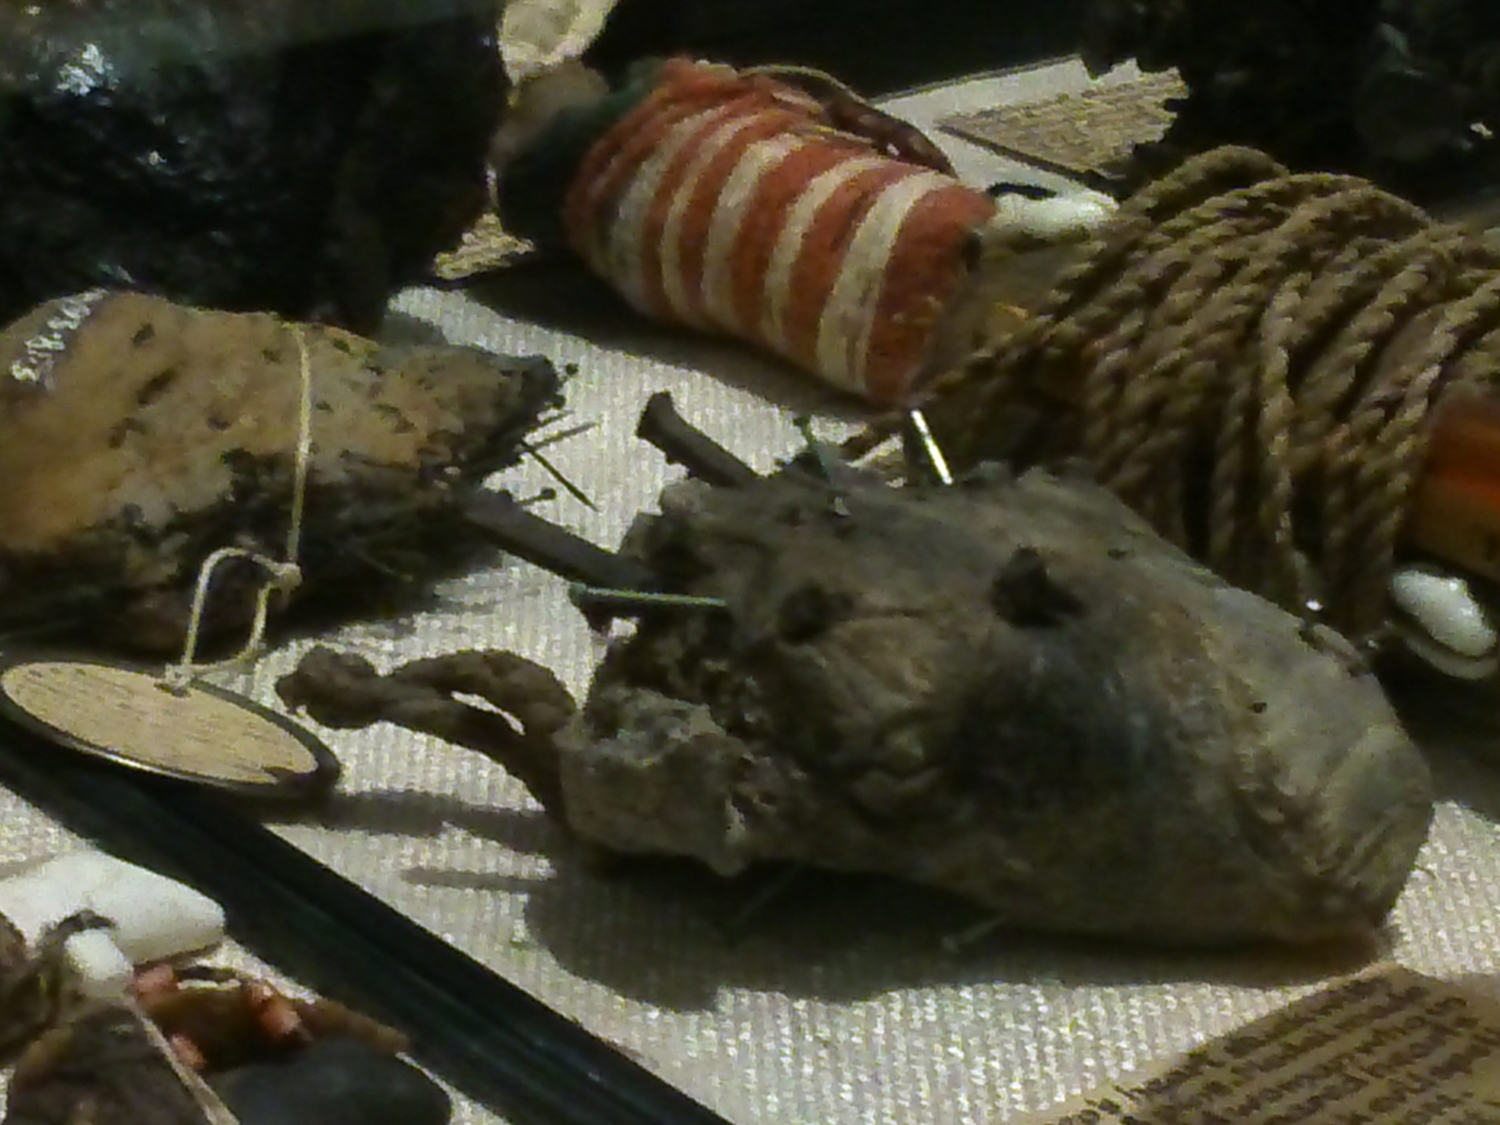 Chosen object: Amulet, asheep's heart stuck with pins and nails as formerlyused in South Devon for breaking evil spells.